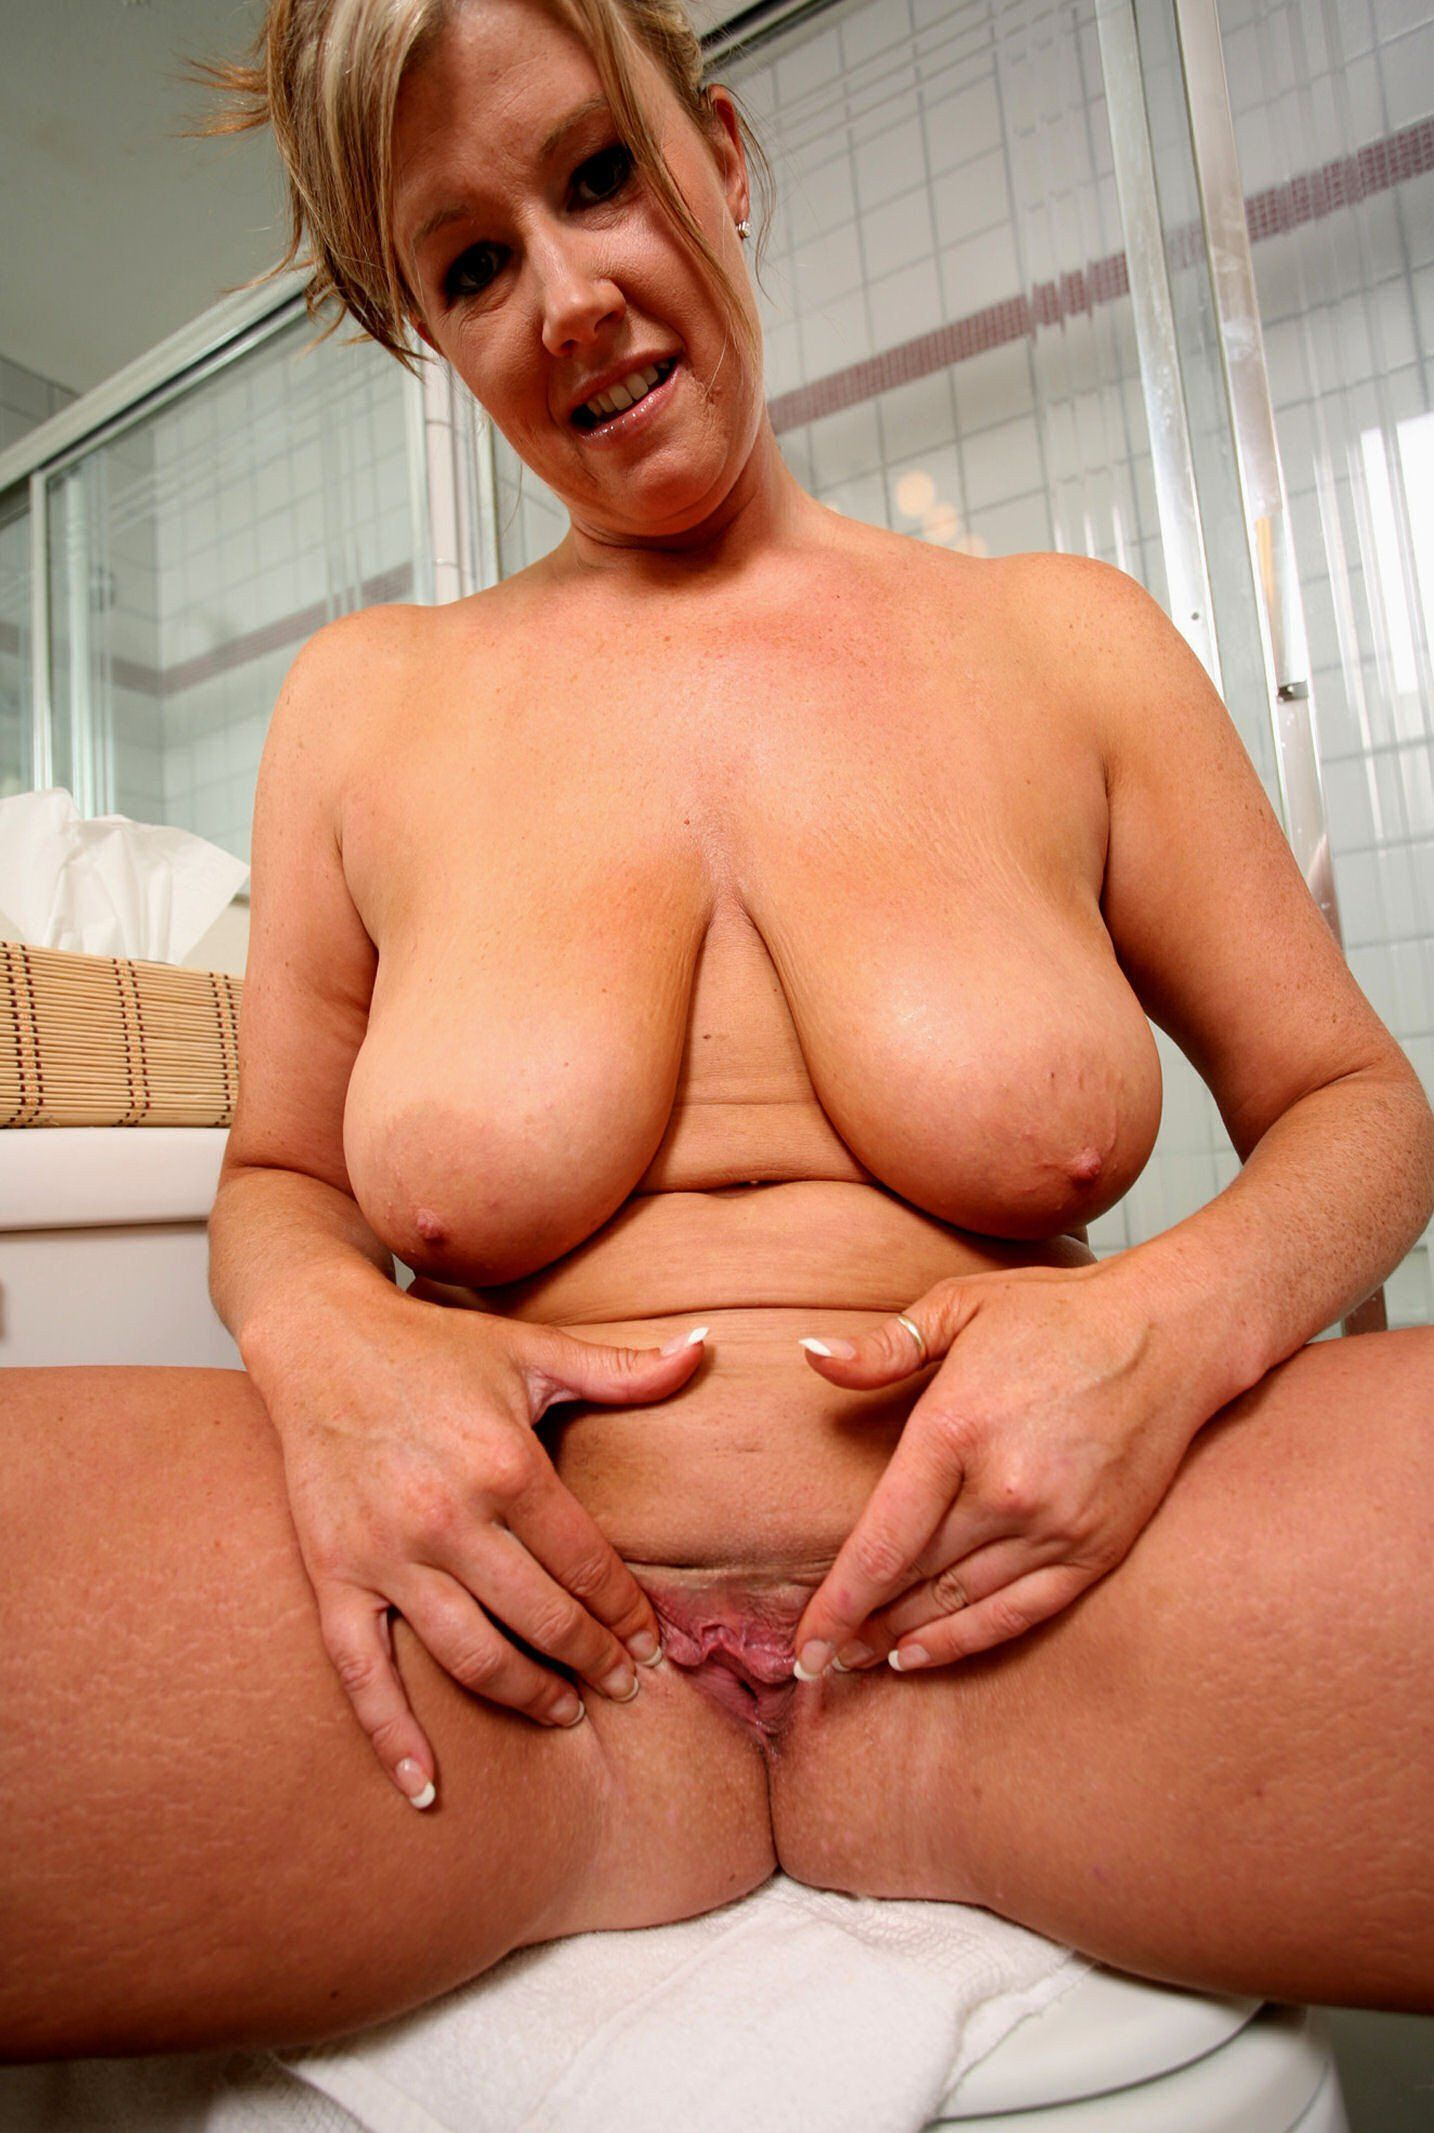 there amateur threesome huge cock remarkable, this valuable opinion